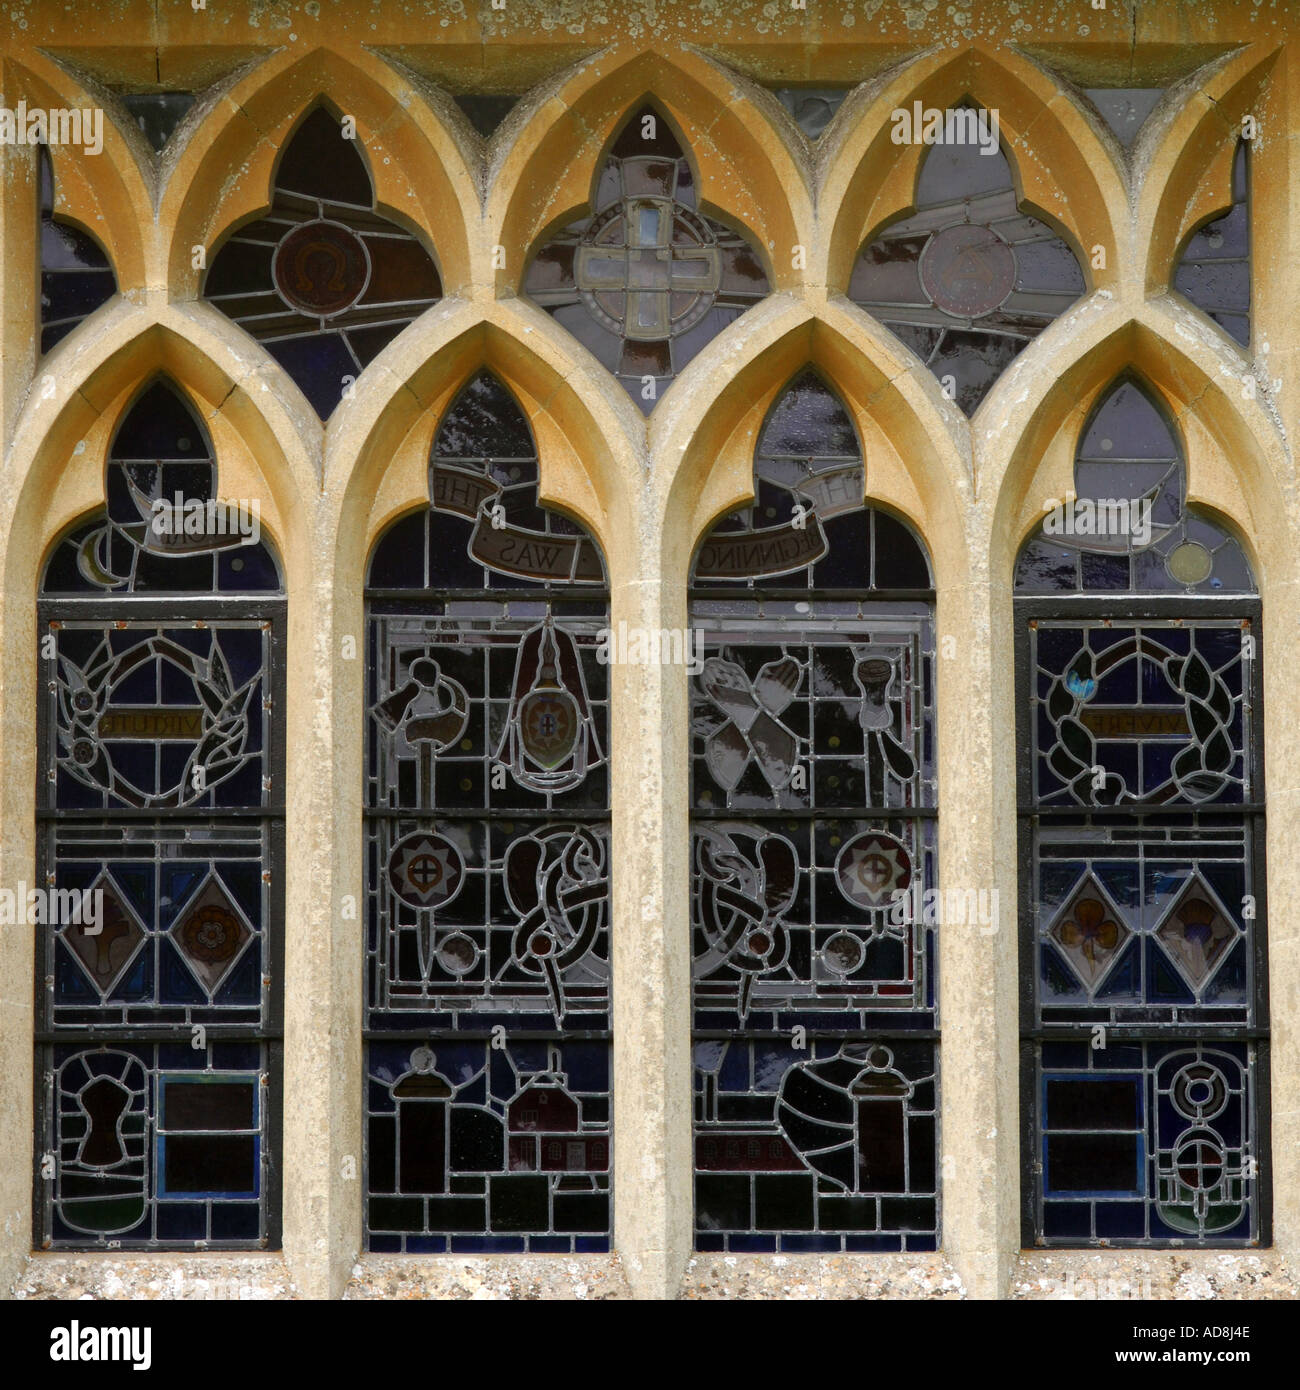 Mullioned Church Windows With Stained Glass Viewed From Outside